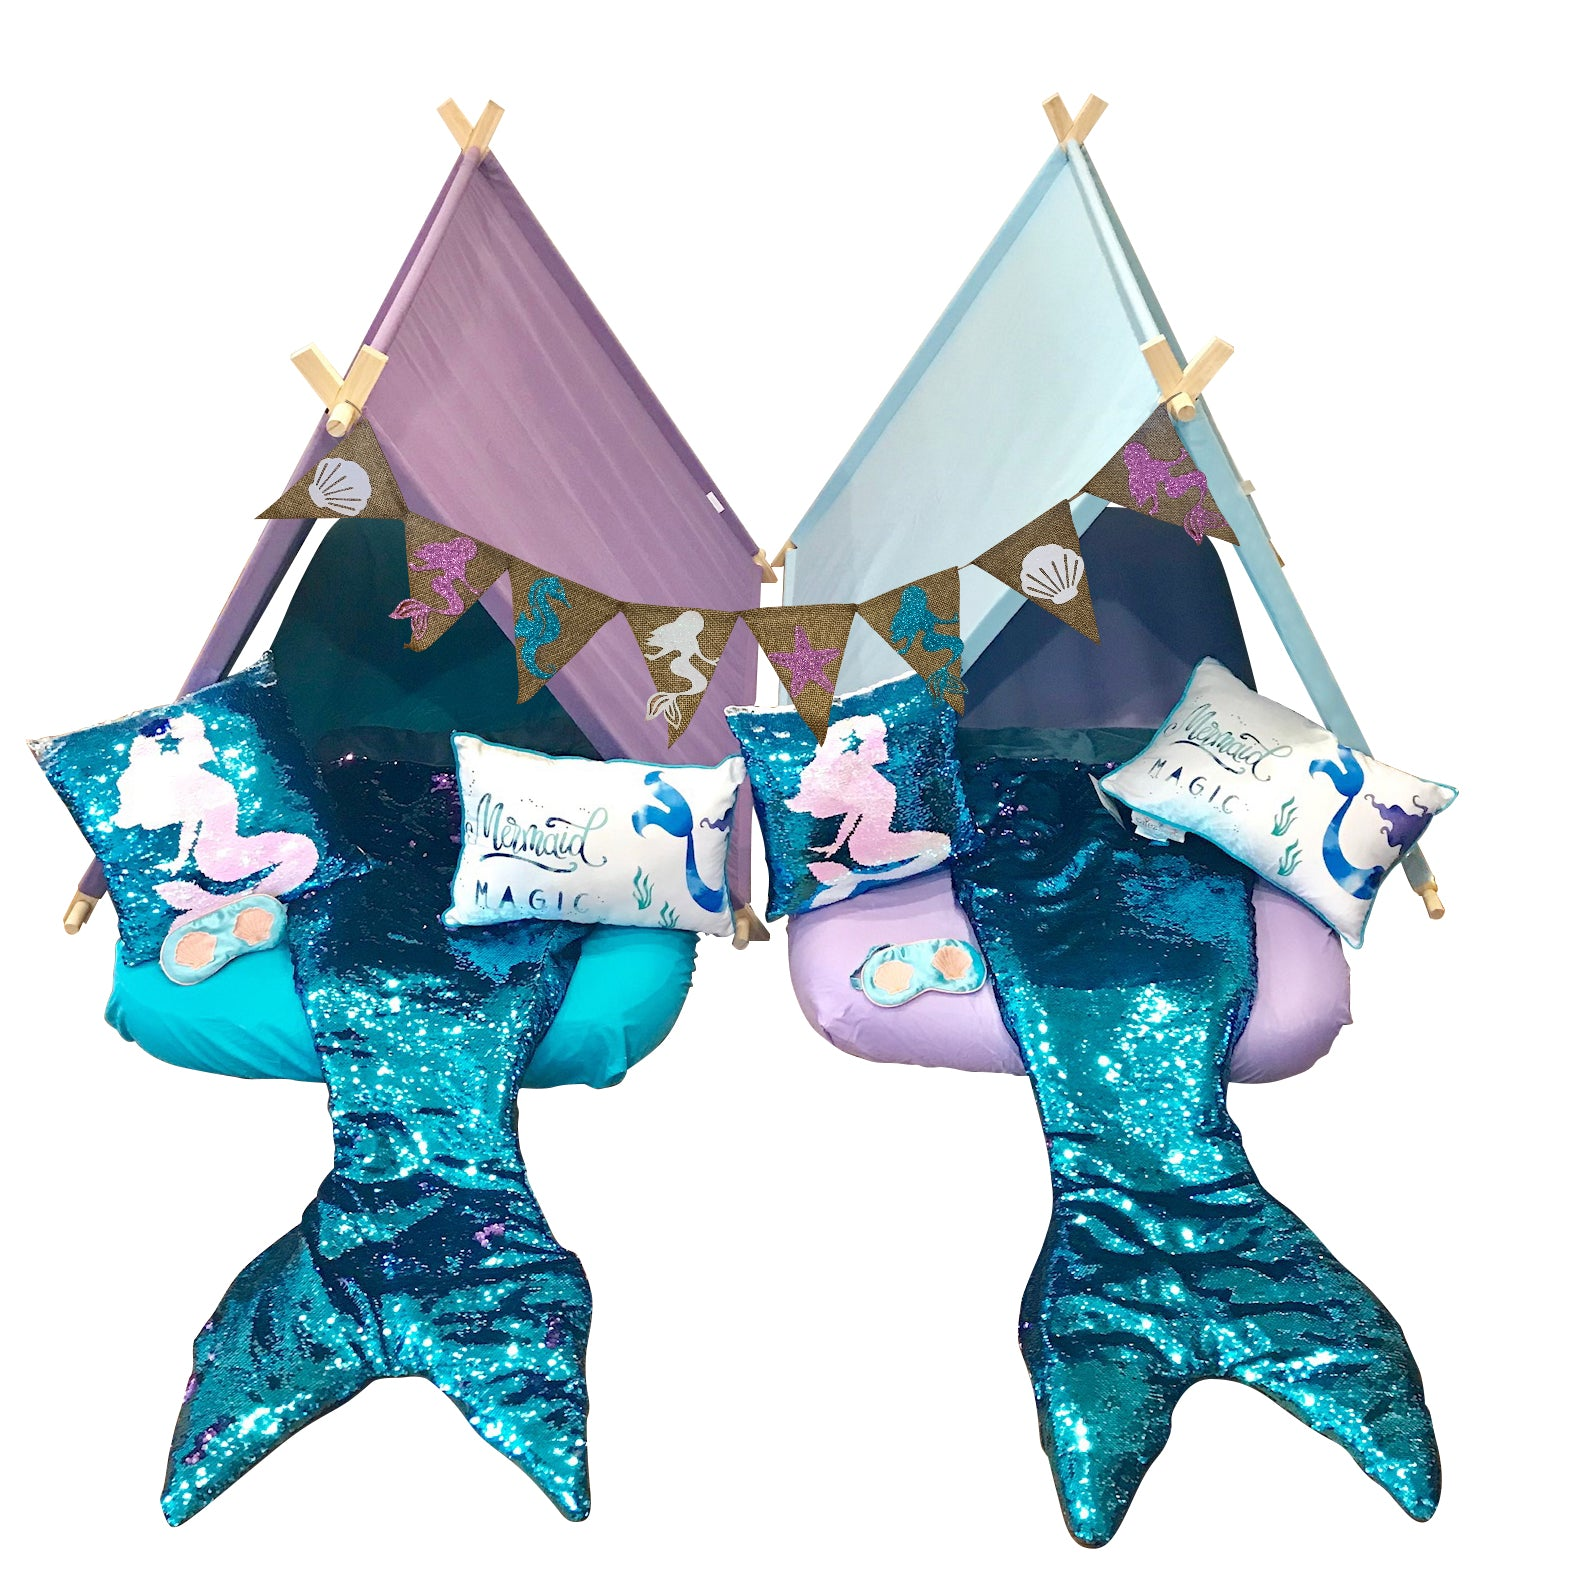 Mermaid tail Sleeping Bag Reversible Sequin